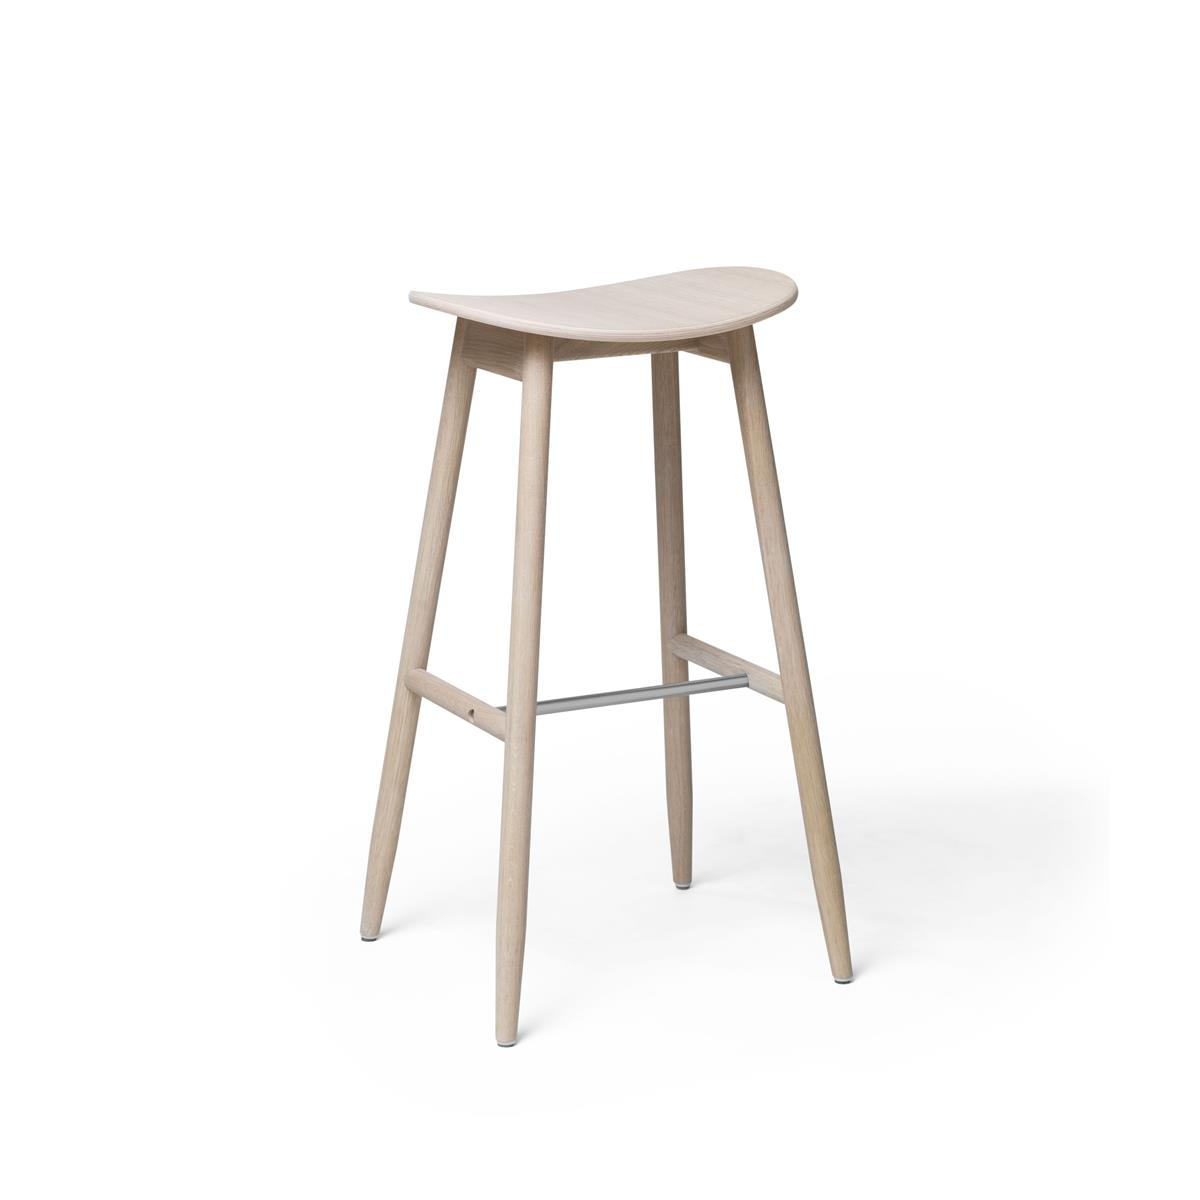 Icha Bar Stool - White Oiled Oak